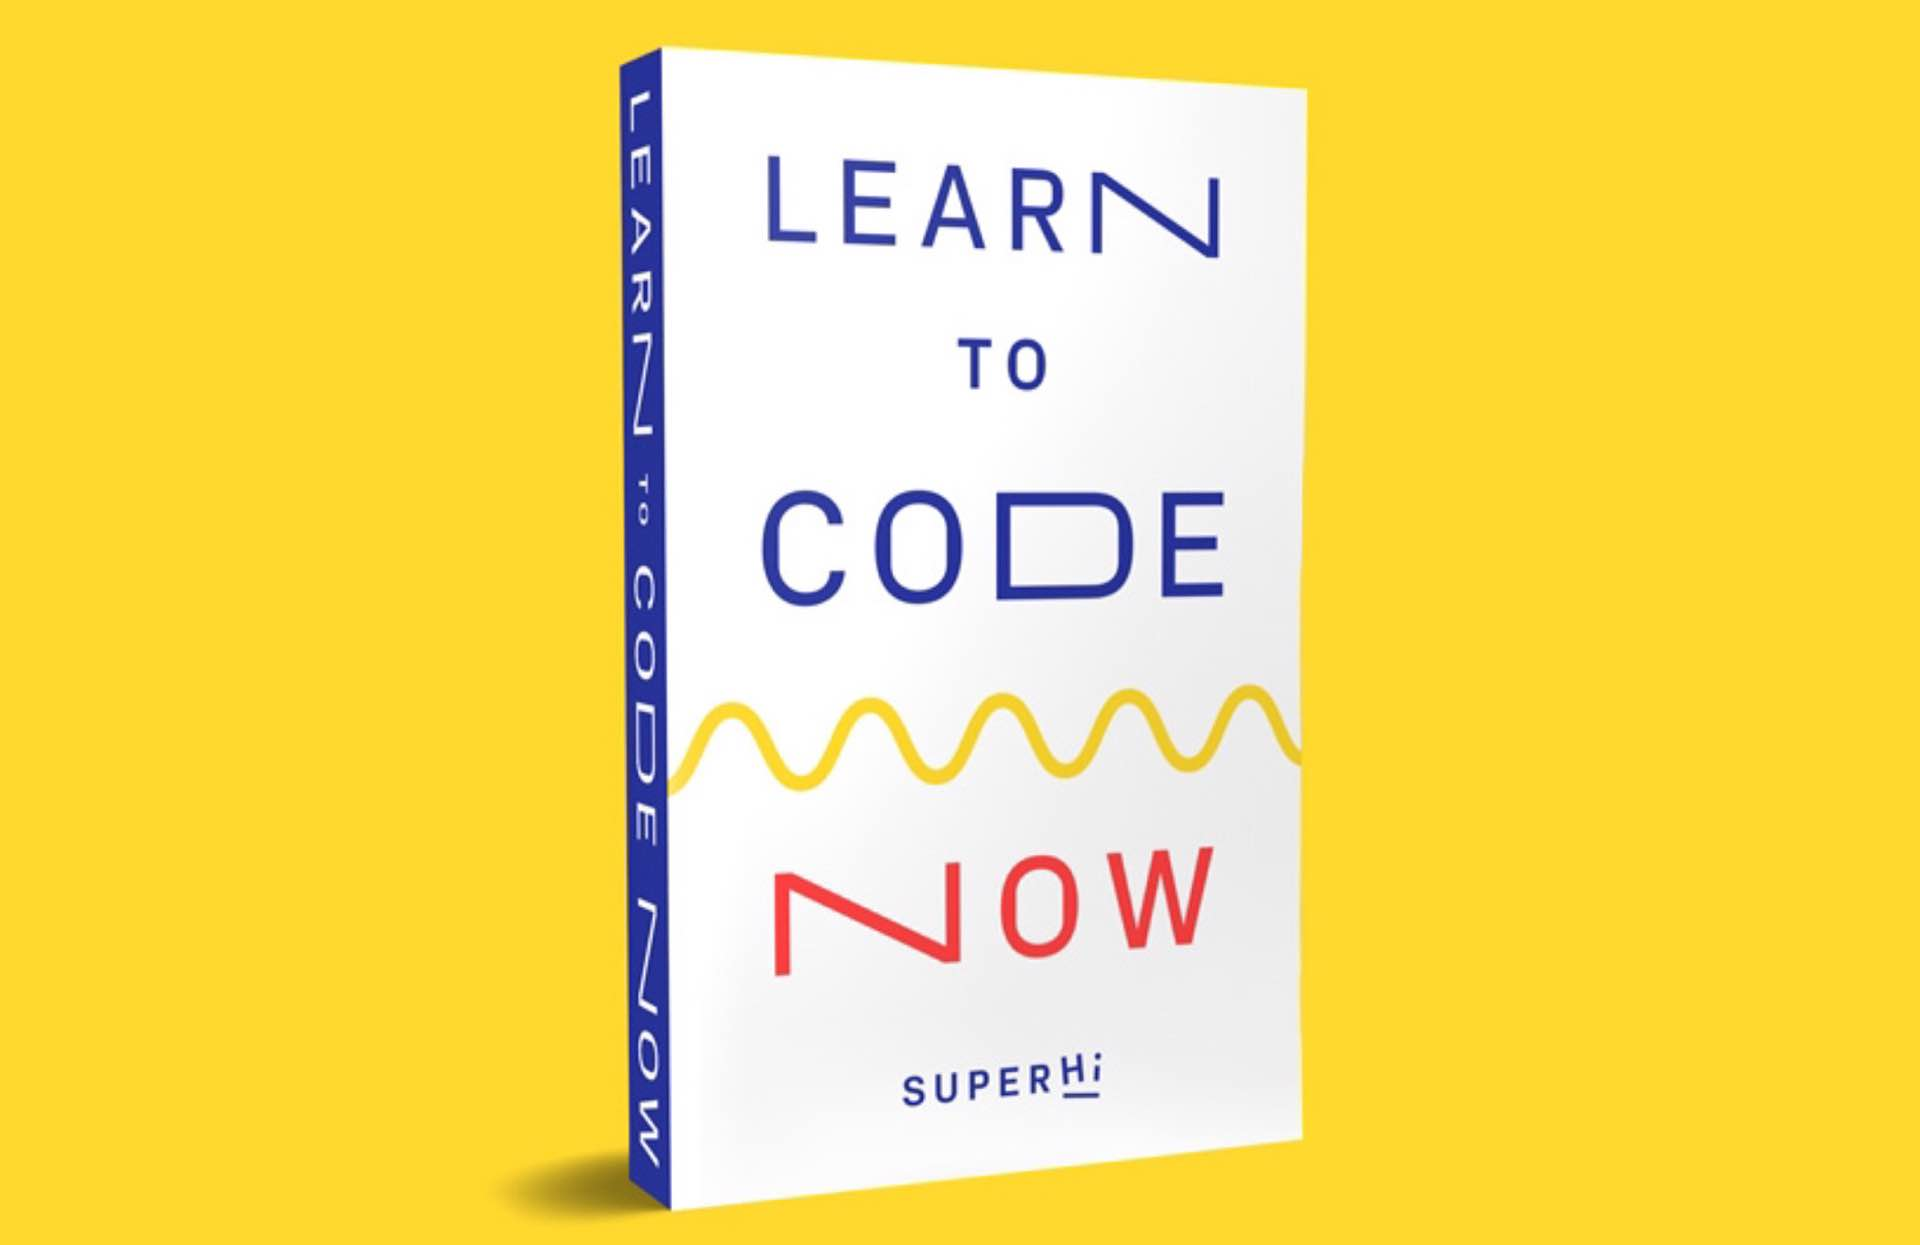 learn-to-code-now-by-rik-lomas-superhi-1